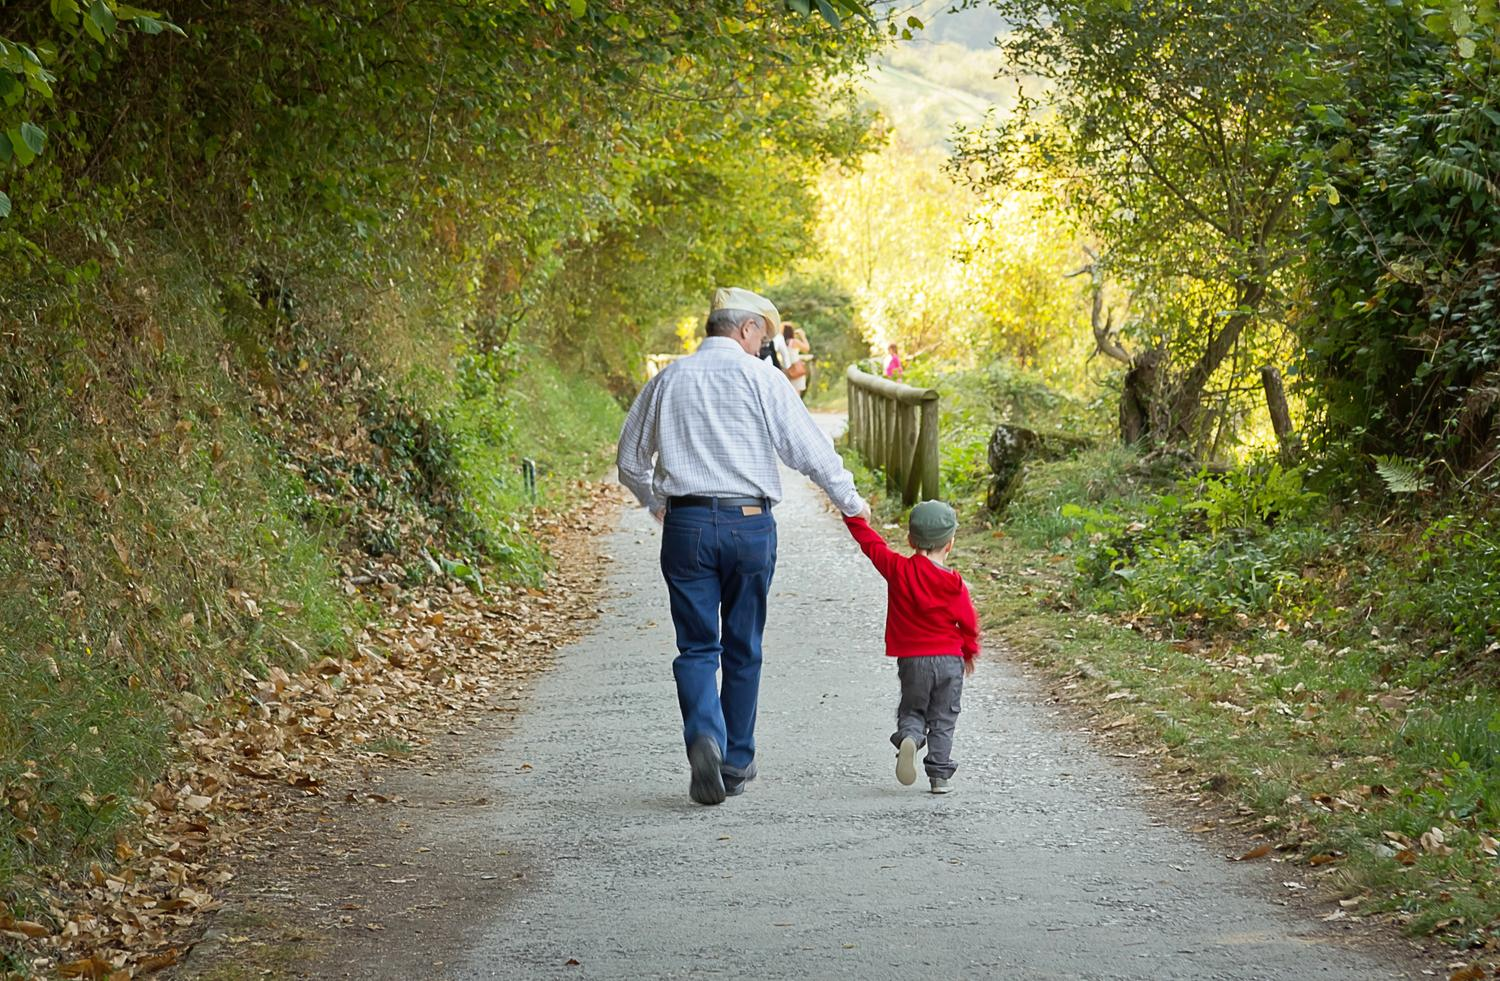 Grandfather and grandchild walking down a nature path holding hands